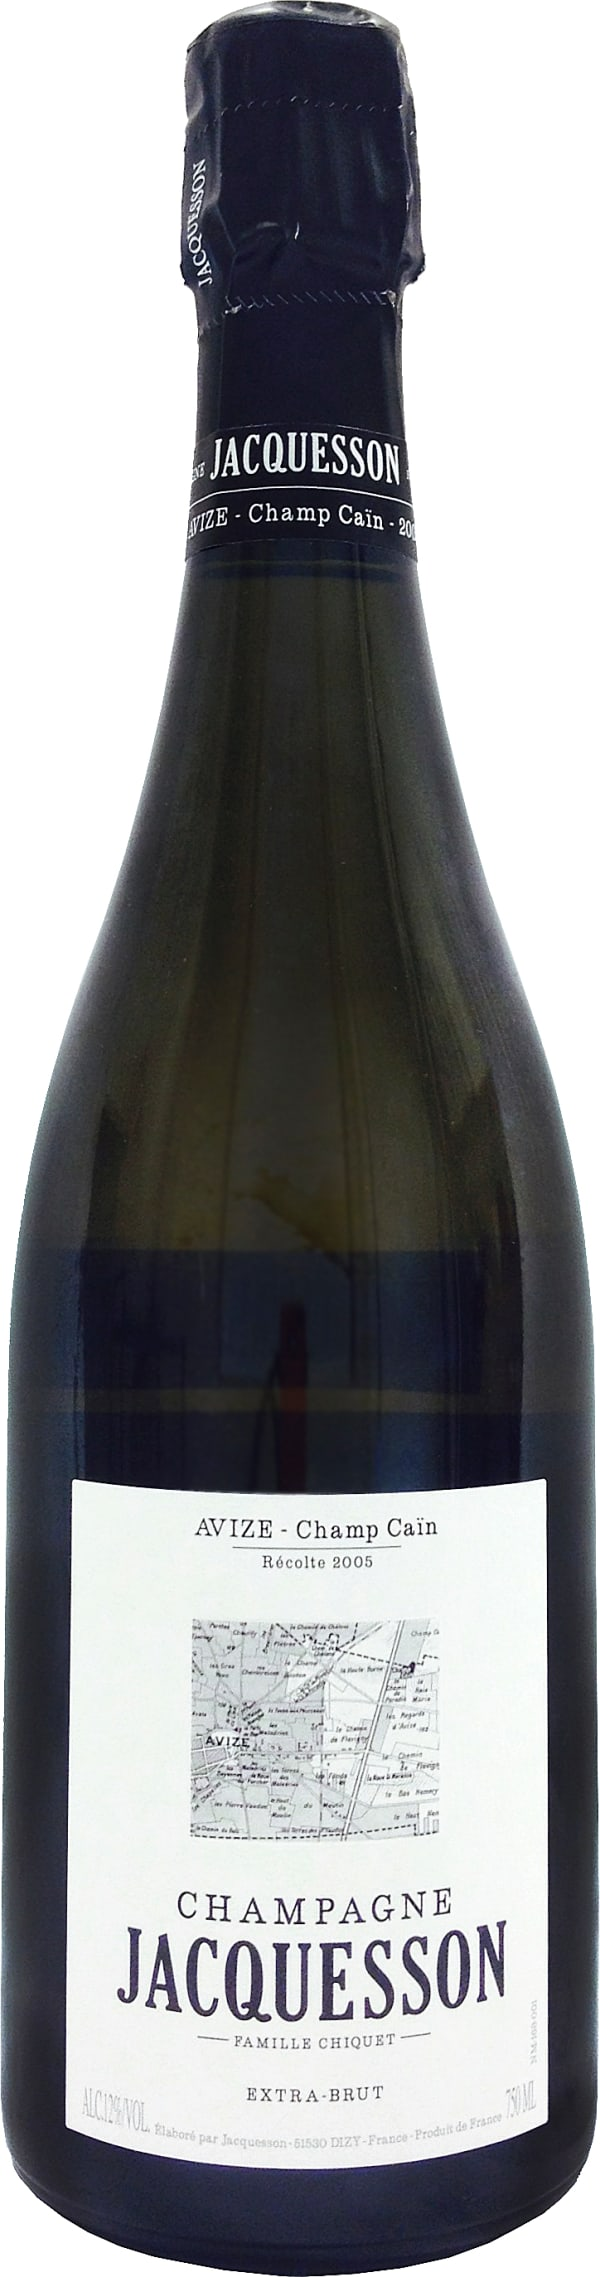 Jacquesson Avize Champ Cain Champagne Extra Brut  2005